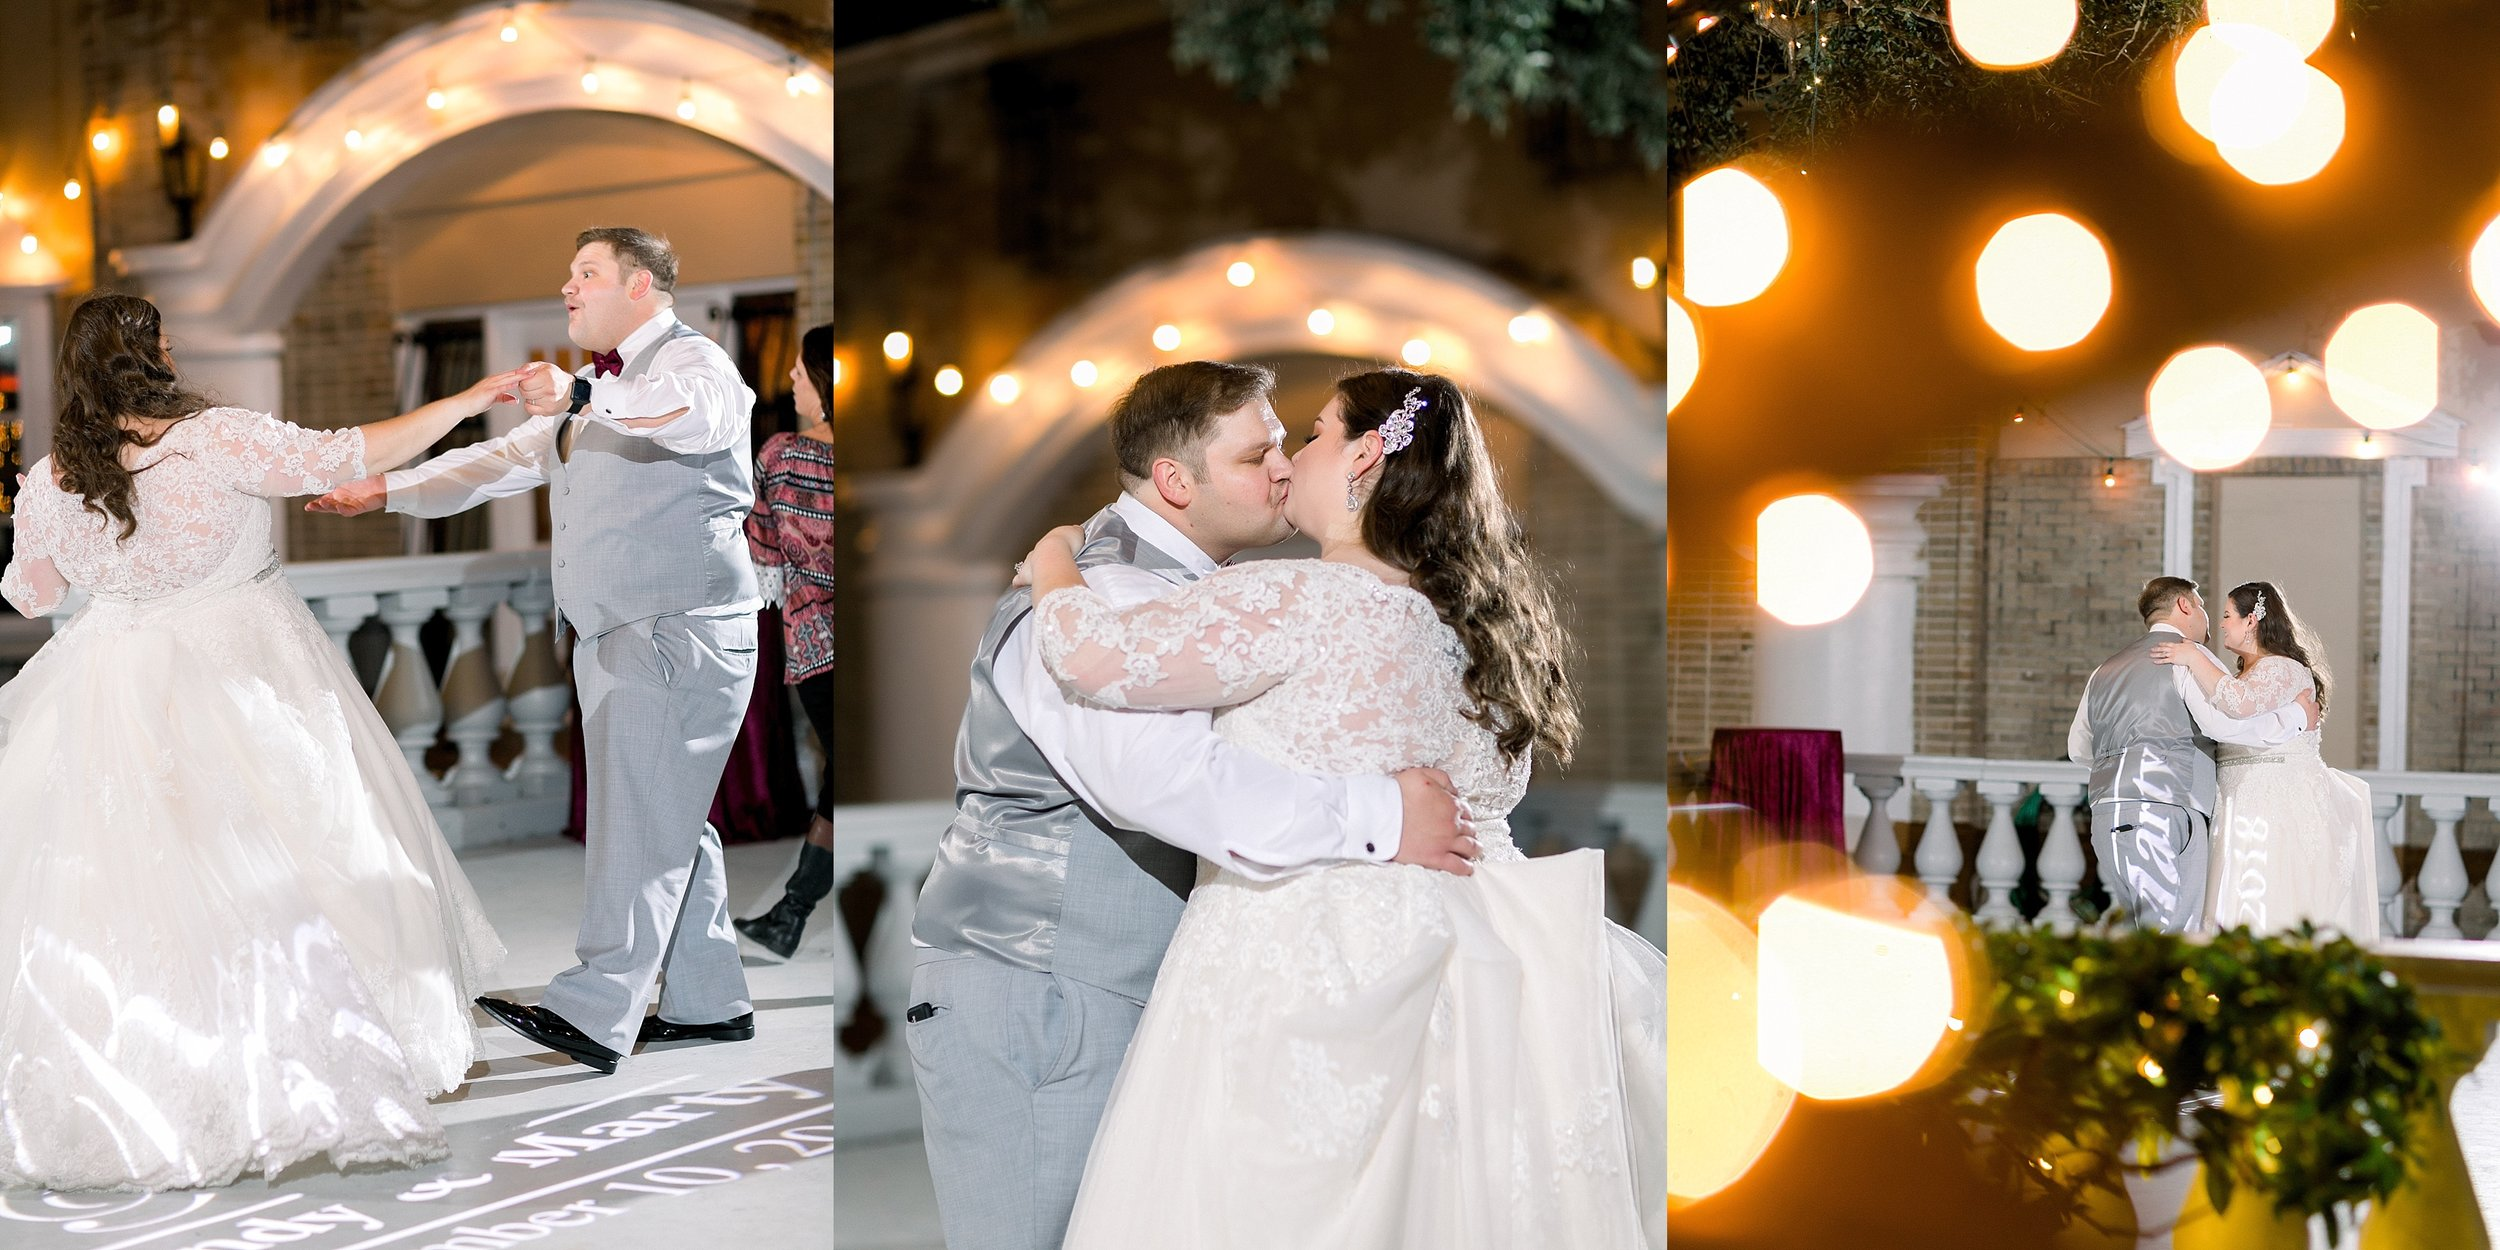 gaslight-at-courtyard-square-corpus-christi-wedding-omni-hotel-fall-winter-wedding-texas-wedding-photographer-lauren-pinson-0107.jpg